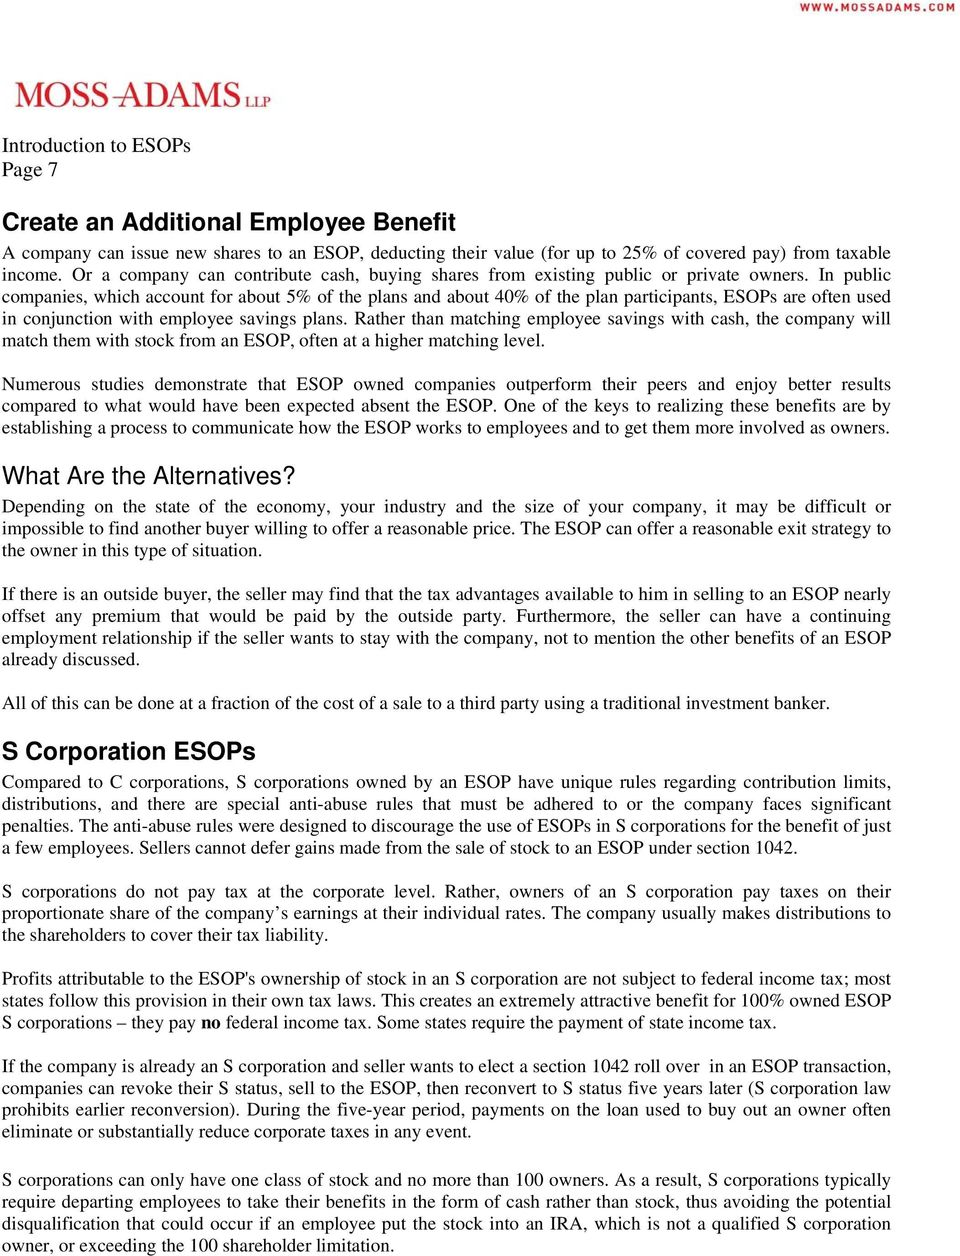 In public companies, which account for about 5% of the plans and about 40% of the plan participants, ESOPs are often used in conjunction with employee savings plans.